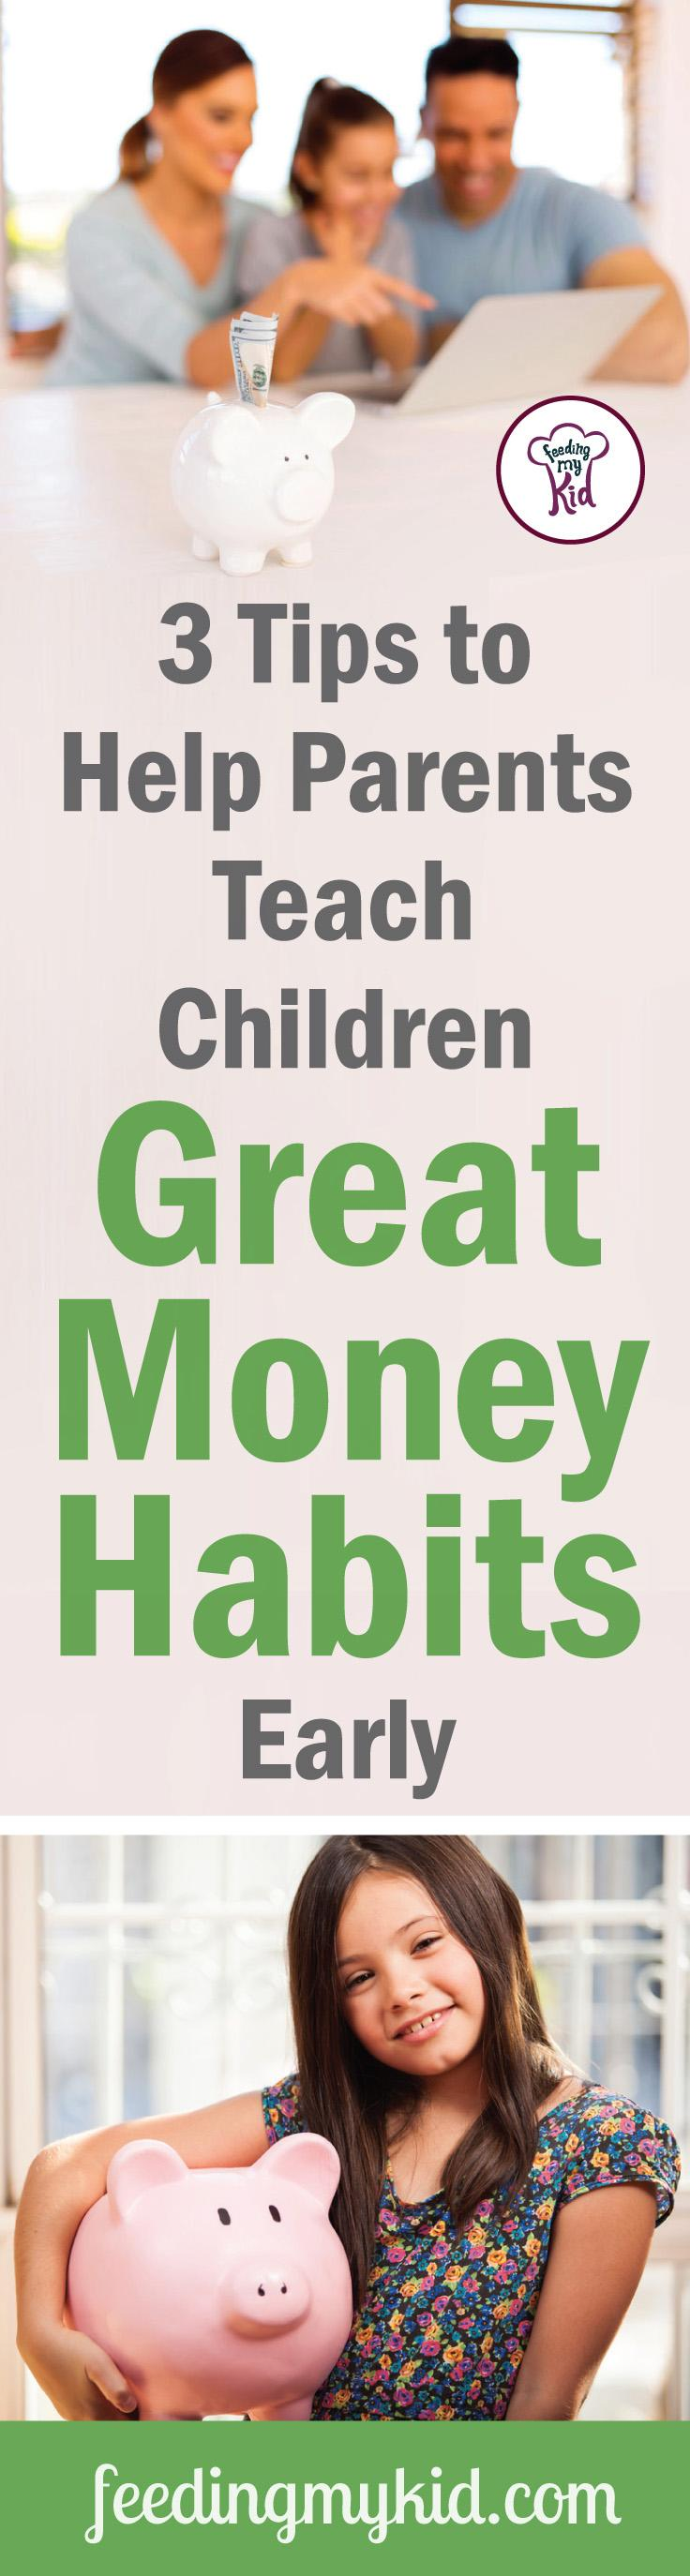 This is a must pin! Teaching kids about money doesn't have to be compliacted. Teaching financial literacy at a young age is easier than you think. Find out how here! Feeding My Kid is a website for parents, filled with all the information you need about how to raise your kids, from healthy tips to nutritious recipes. #money #parenting #teachingkidsmoney